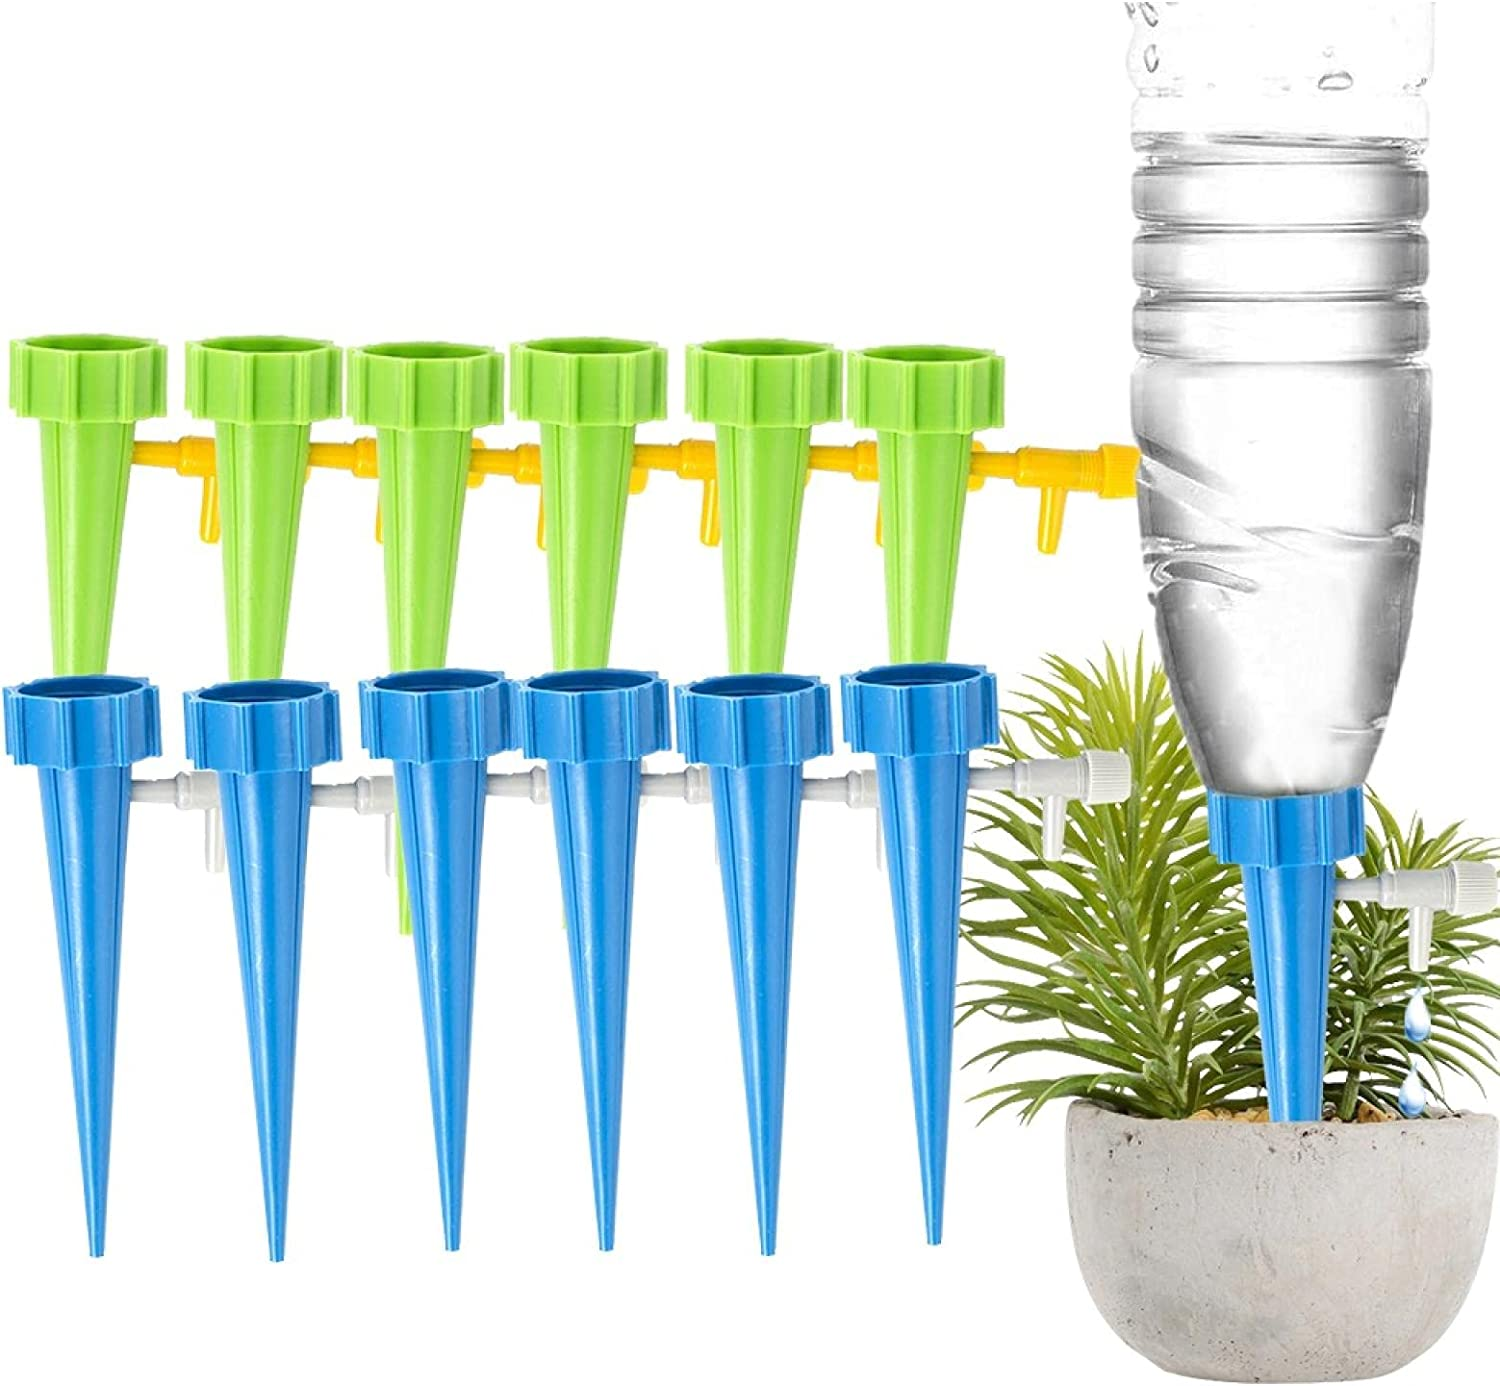 Max 60% OFF Plant Irrigation Drippers Self Watering 24 Limited time trial price Devices 36 12 P